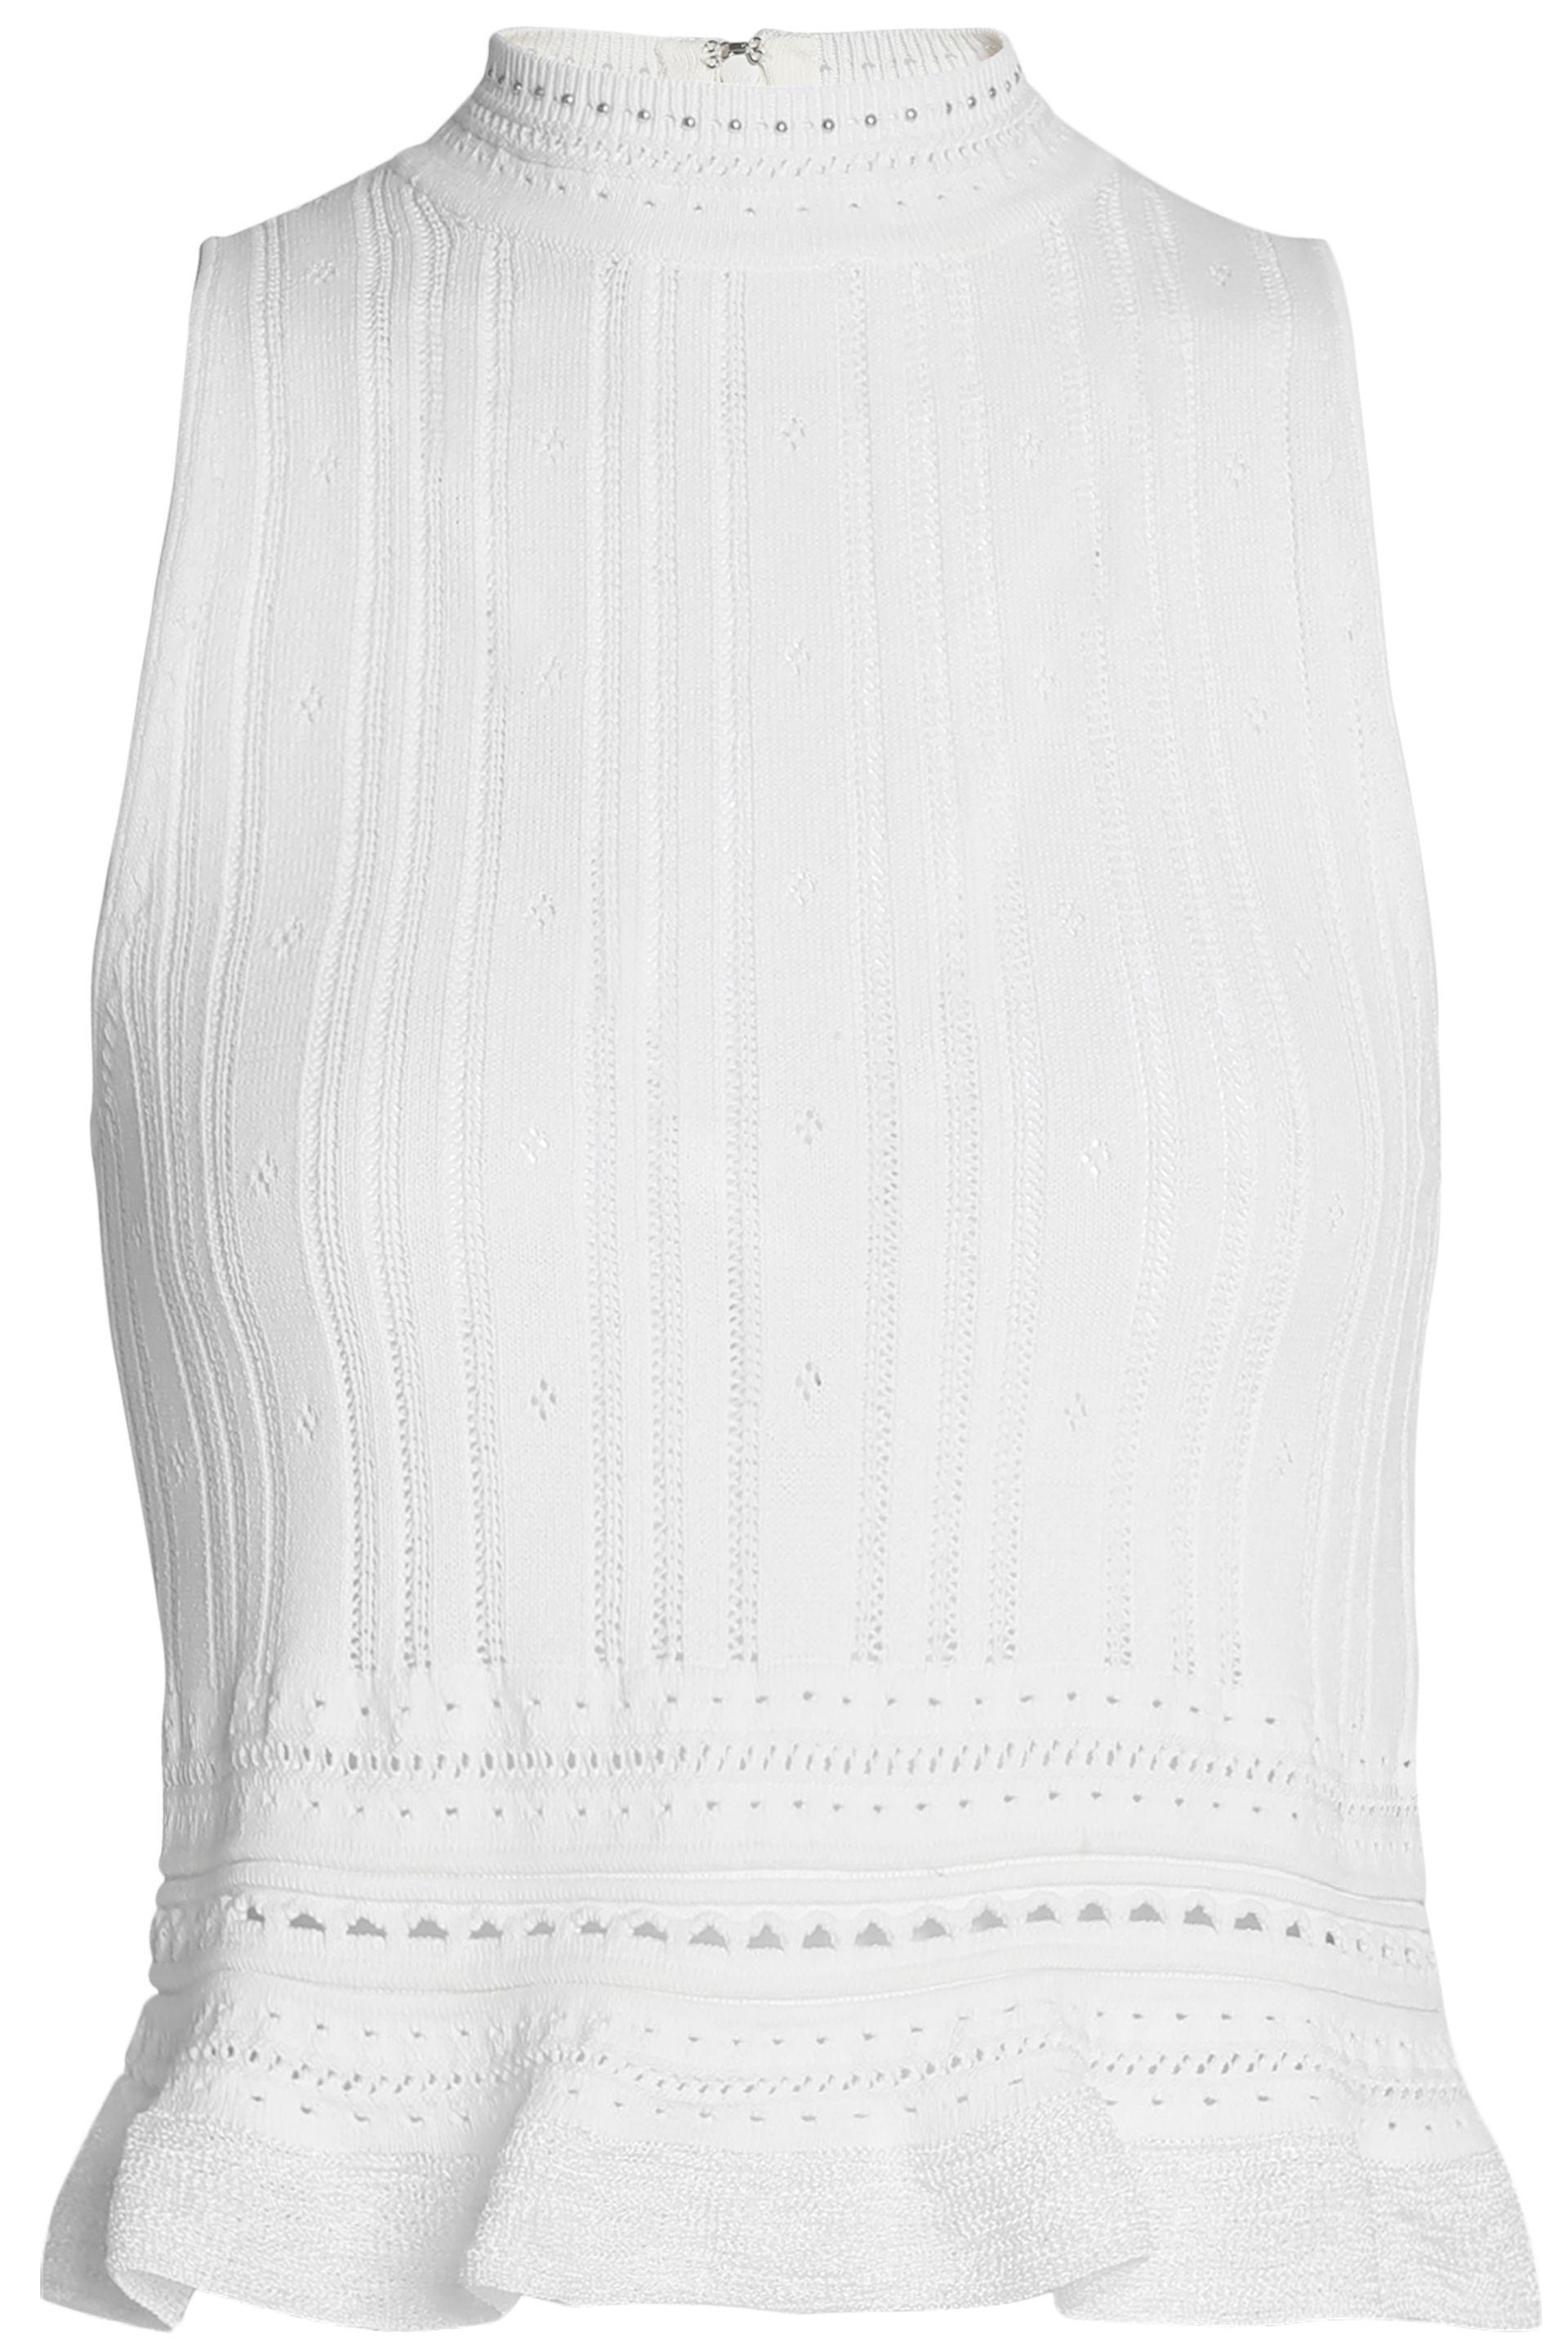 3.1 Phillip Lim Woman Pointelle-trimmed Ribbed-knit Top White Size M 3.1 Phillip Lim Order For Sale Buy Cheap Browse Best Sale Free Shipping Wiki Free Shipping Footlocker Finishline VXO8TG3l8